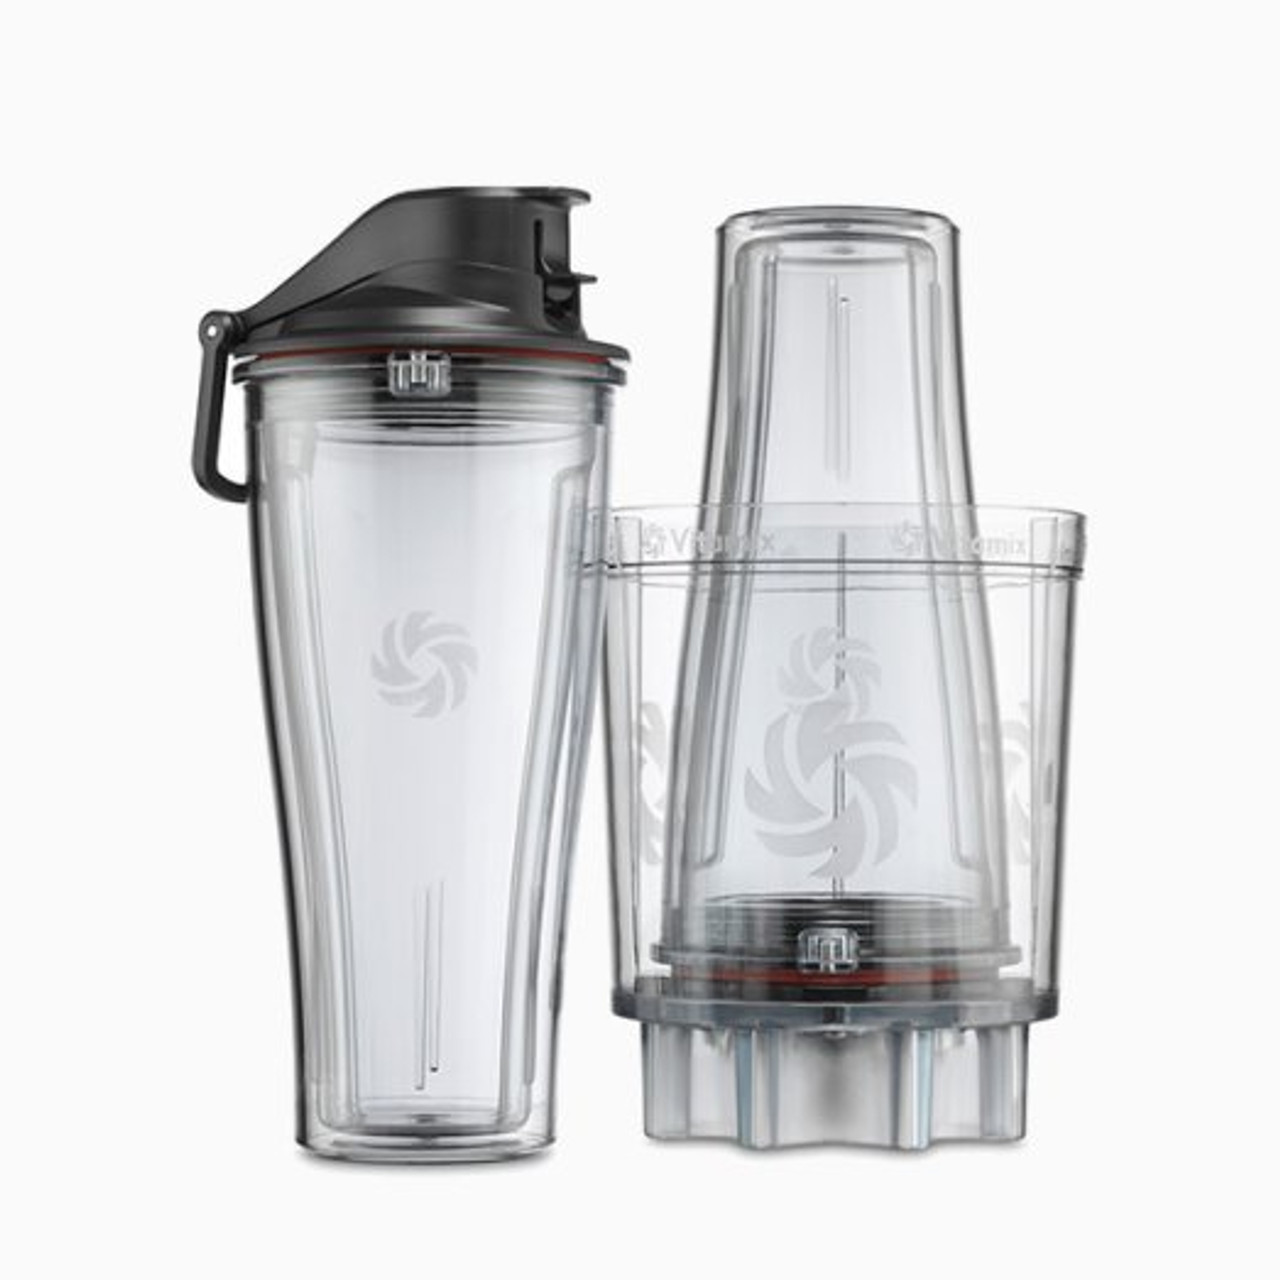 VITAMIX PERSONAL CUP & ADAPTER